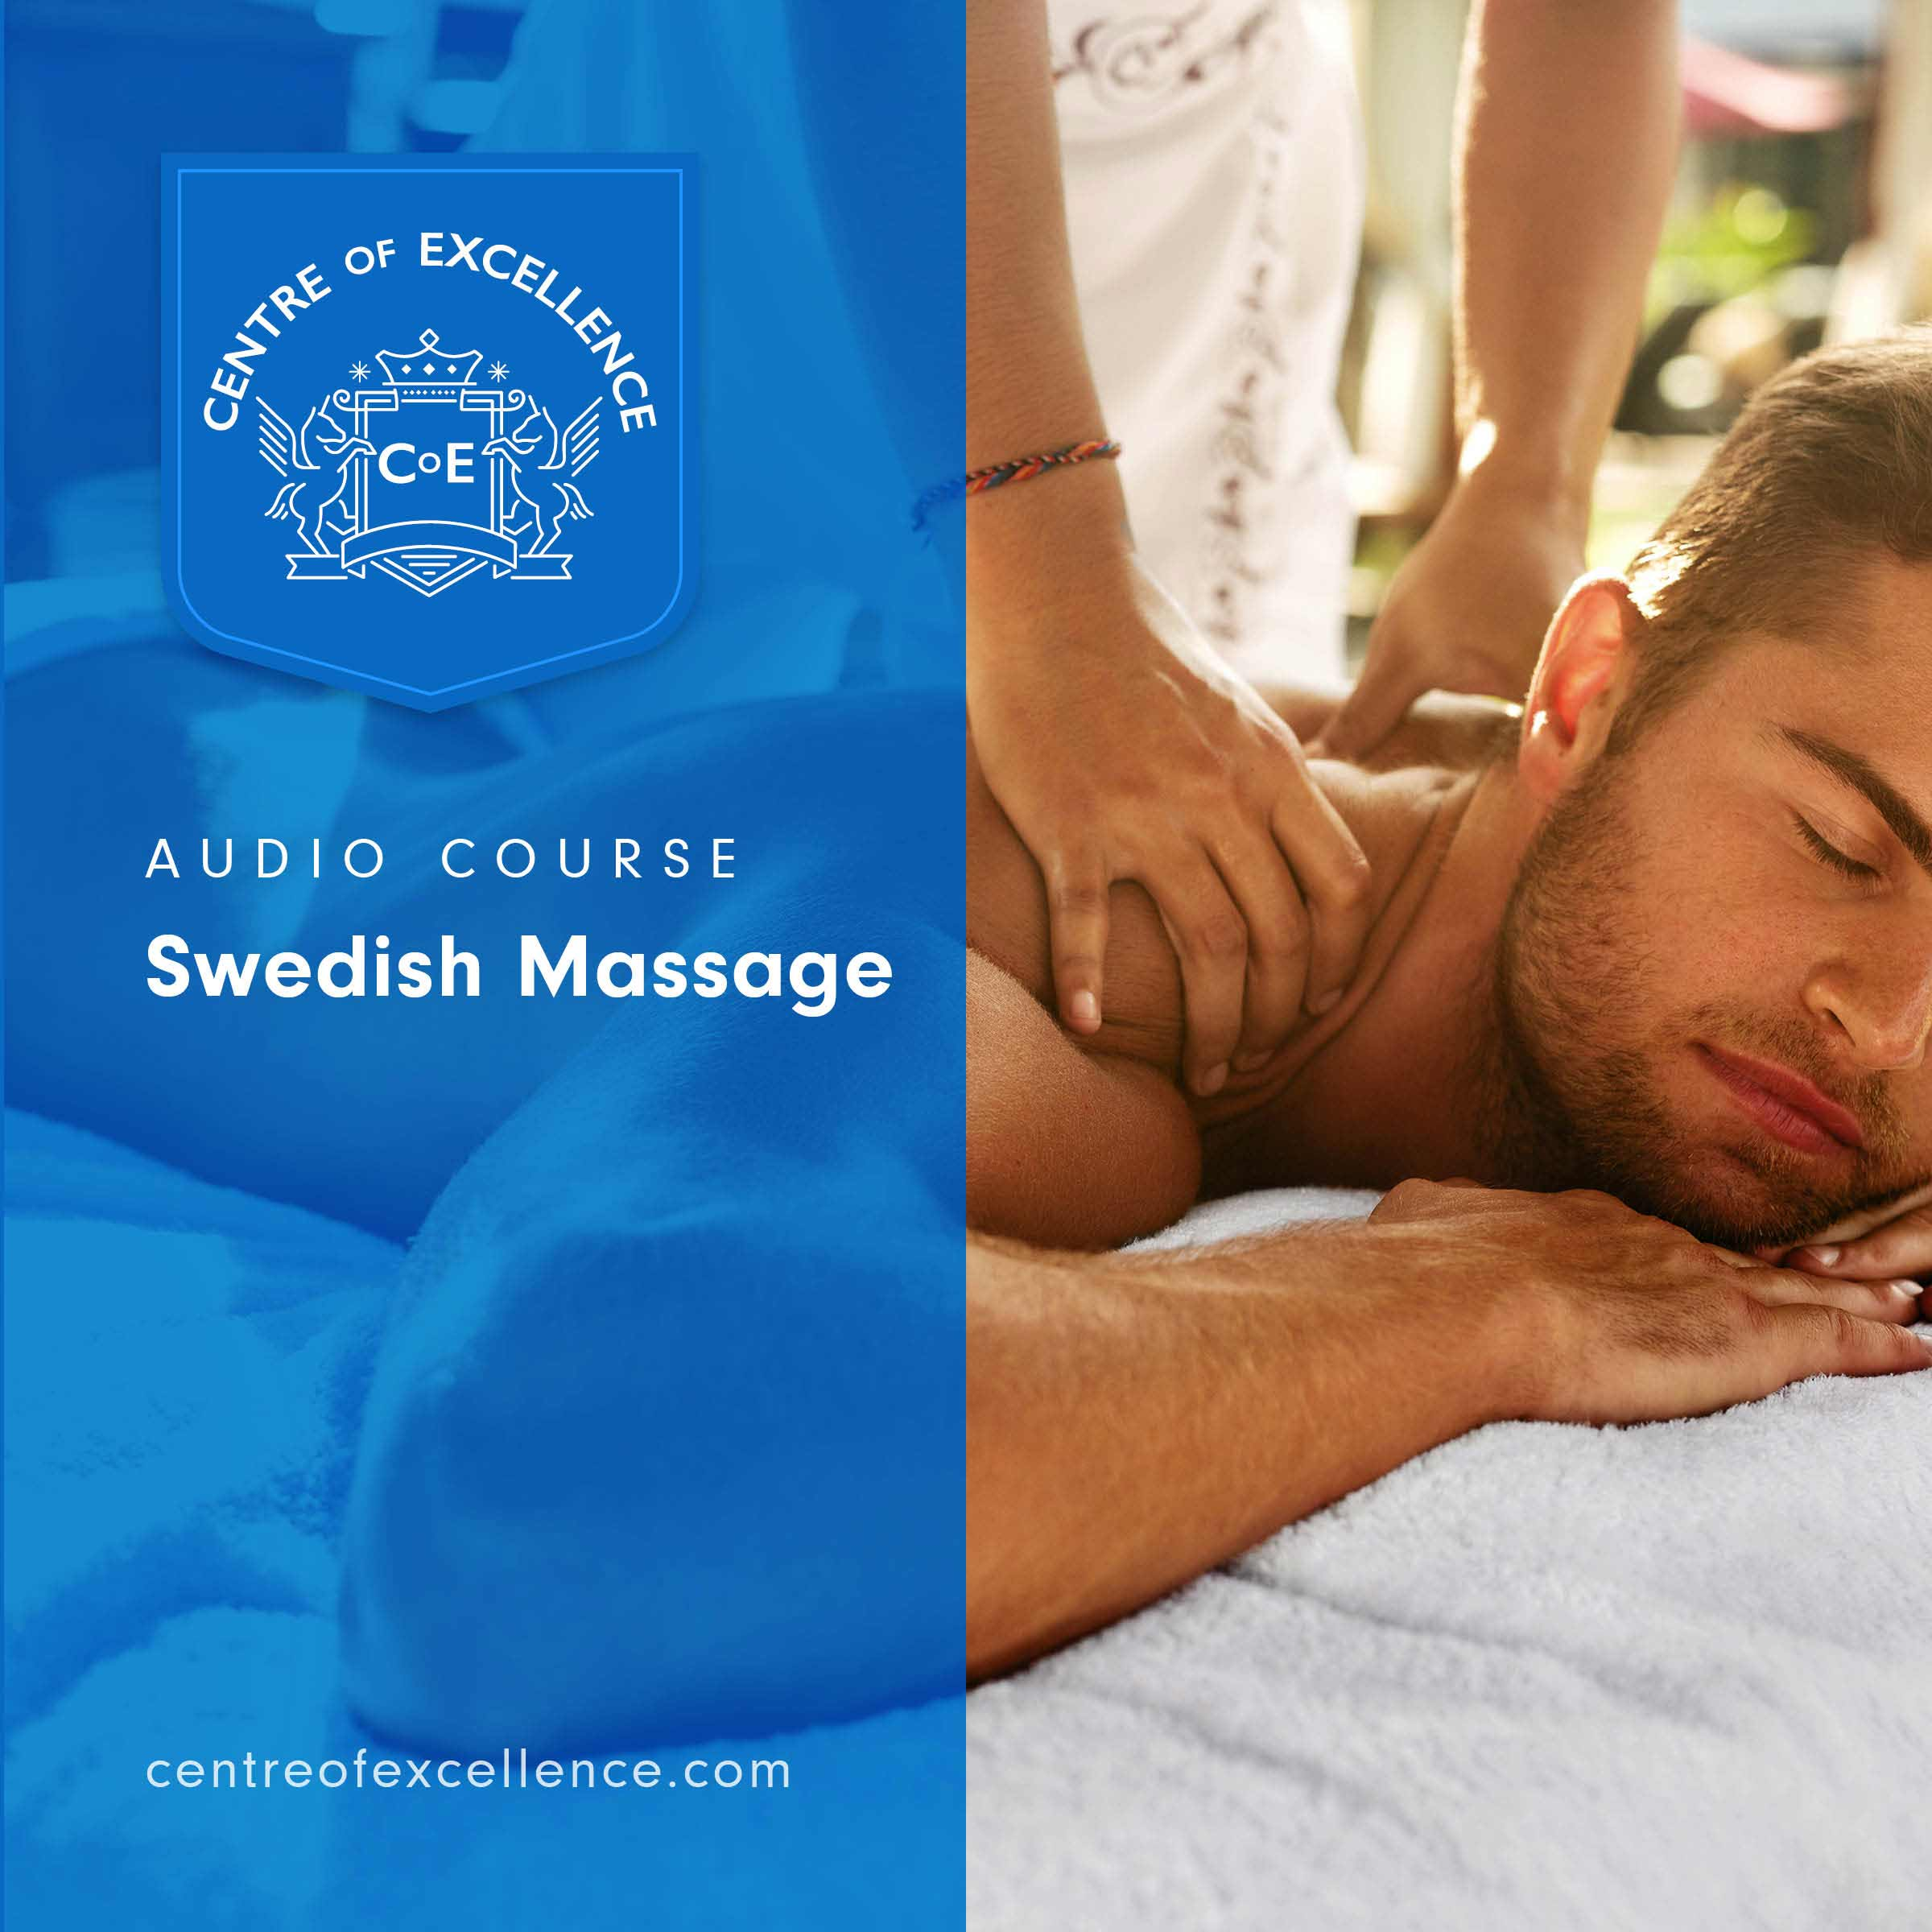 Swedish Massage Audio Course